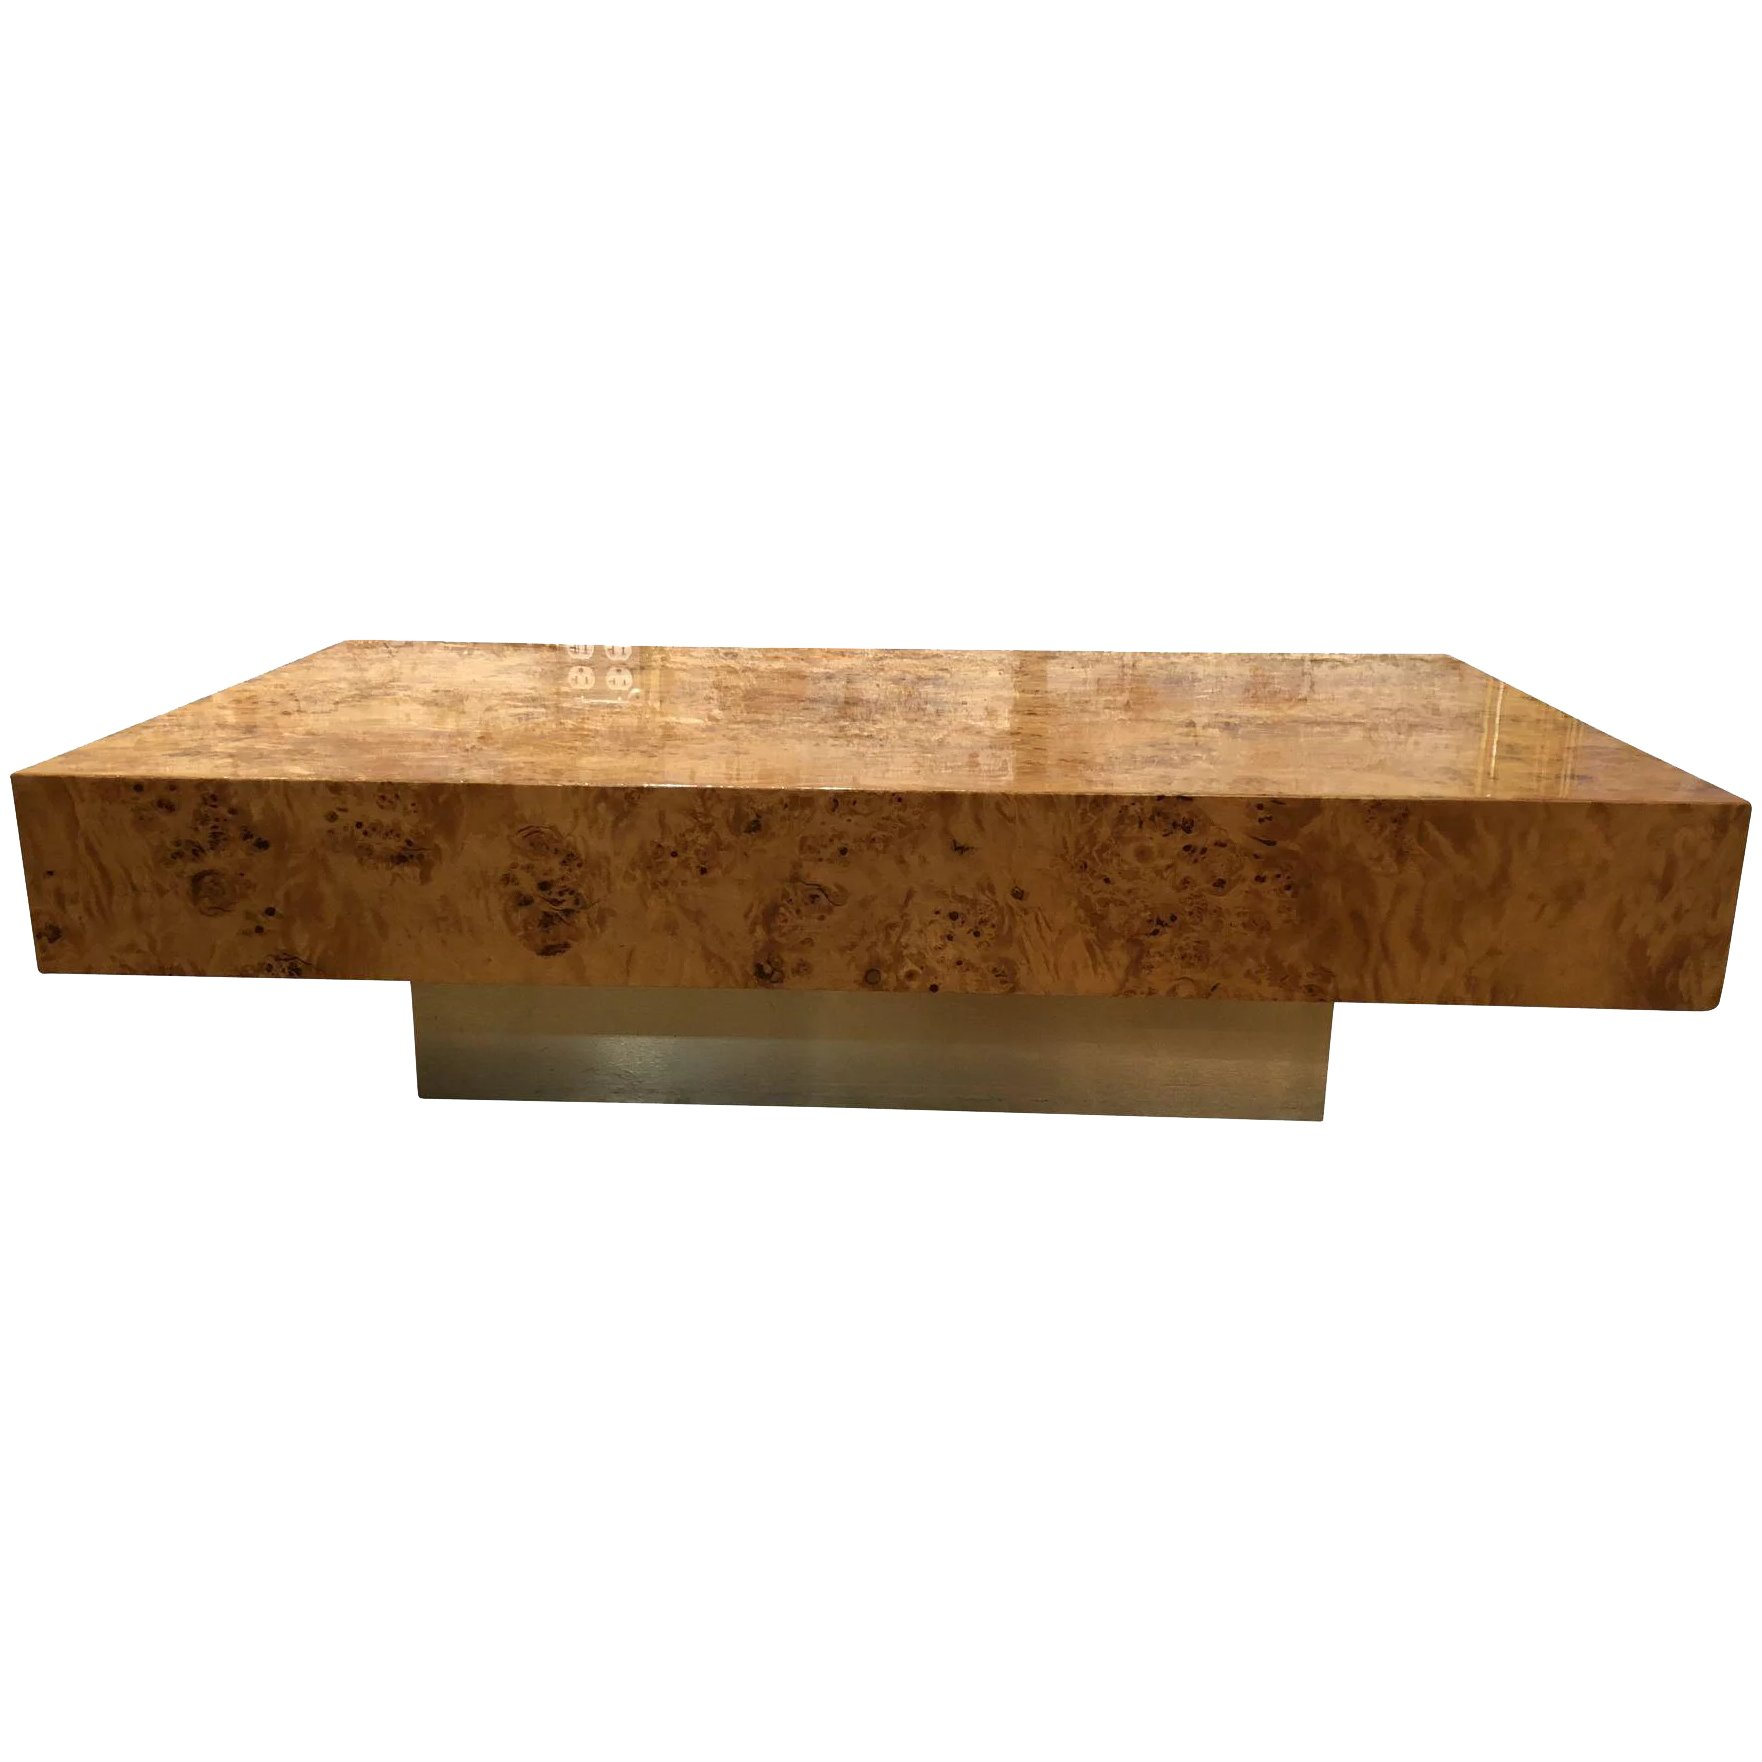 - Attractive Vintage French Burl Wood Coffee Table Made By